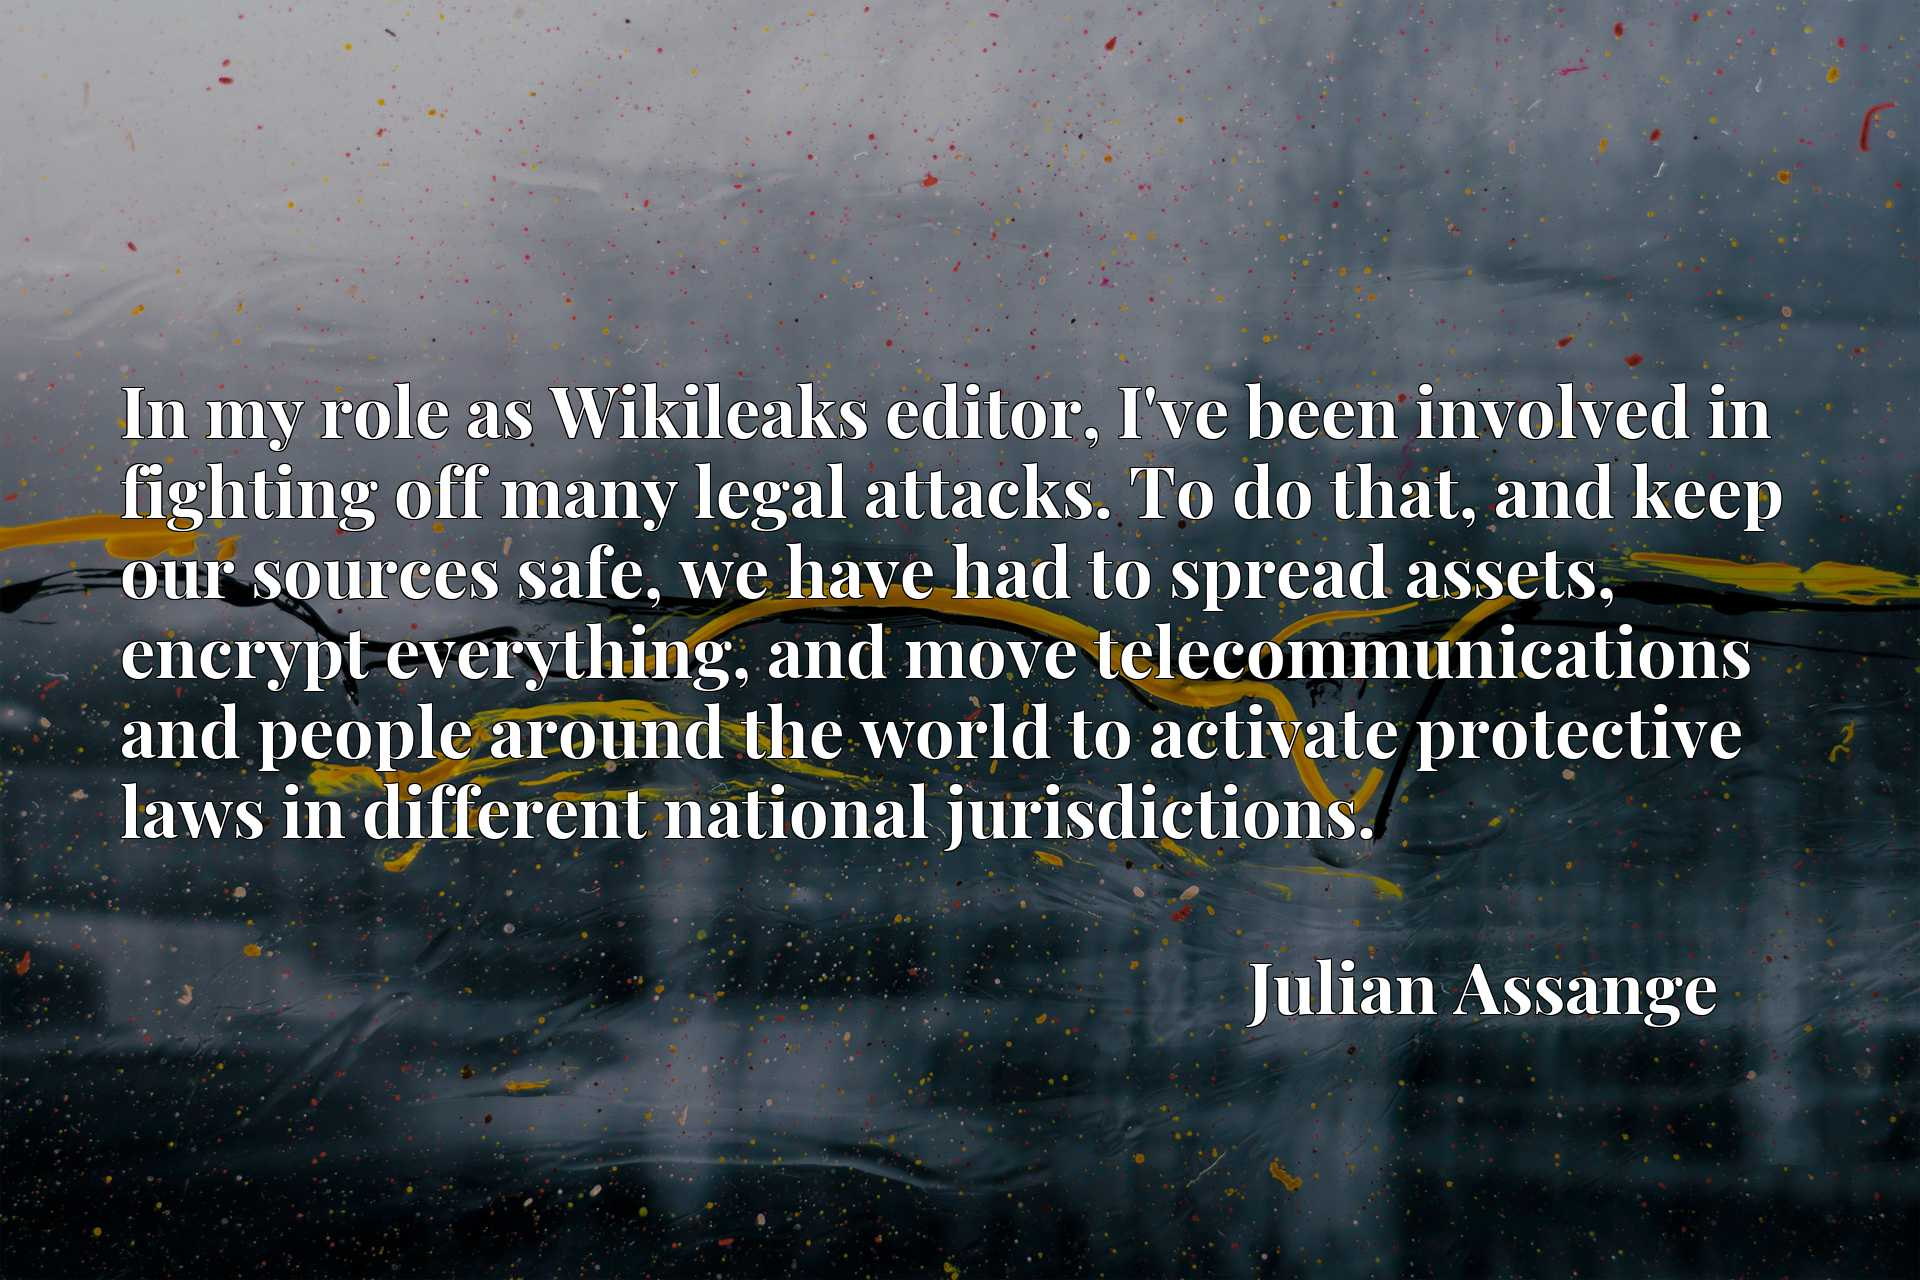 In my role as Wikileaks editor, I've been involved in fighting off many legal attacks. To do that, and keep our sources safe, we have had to spread assets, encrypt everything, and move telecommunications and people around the world to activate protective laws in different national jurisdictions.